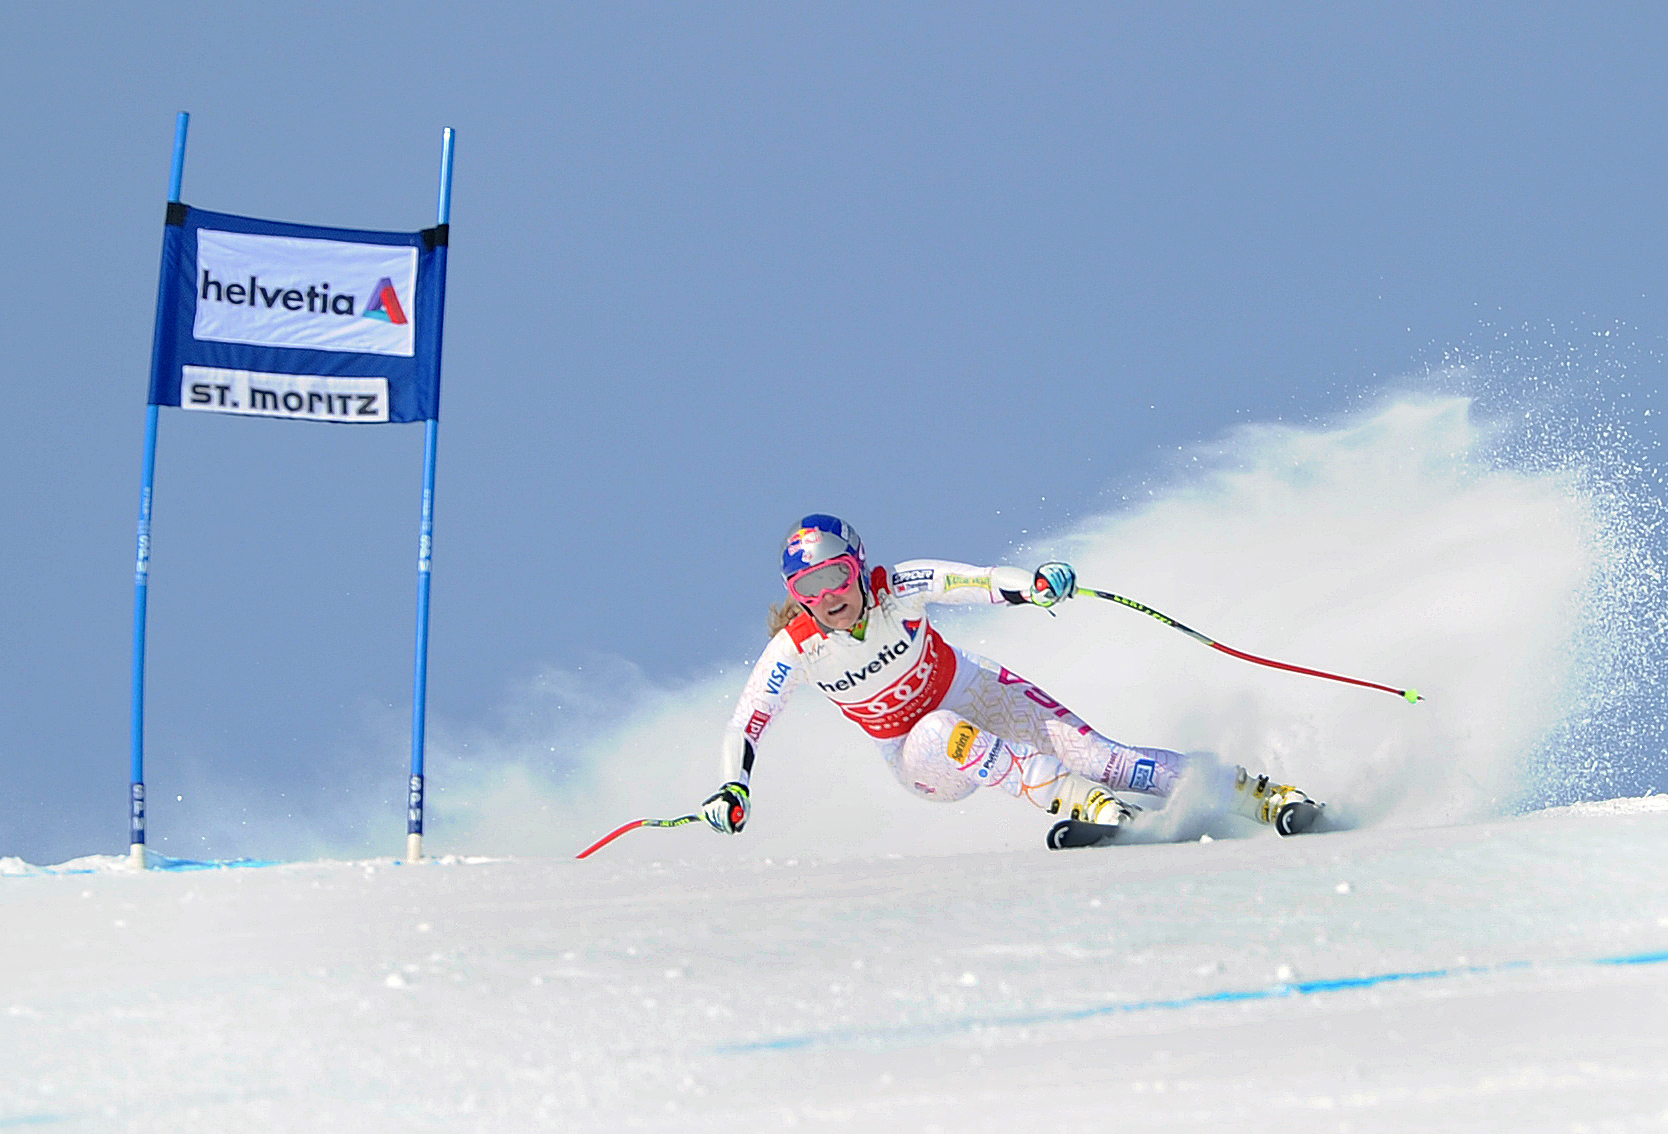 Lindsey Vonn at St. Moritz on January 29, 2012, racing in the super-combined. Photo: Erich Speiss/Red Bull Content Pool